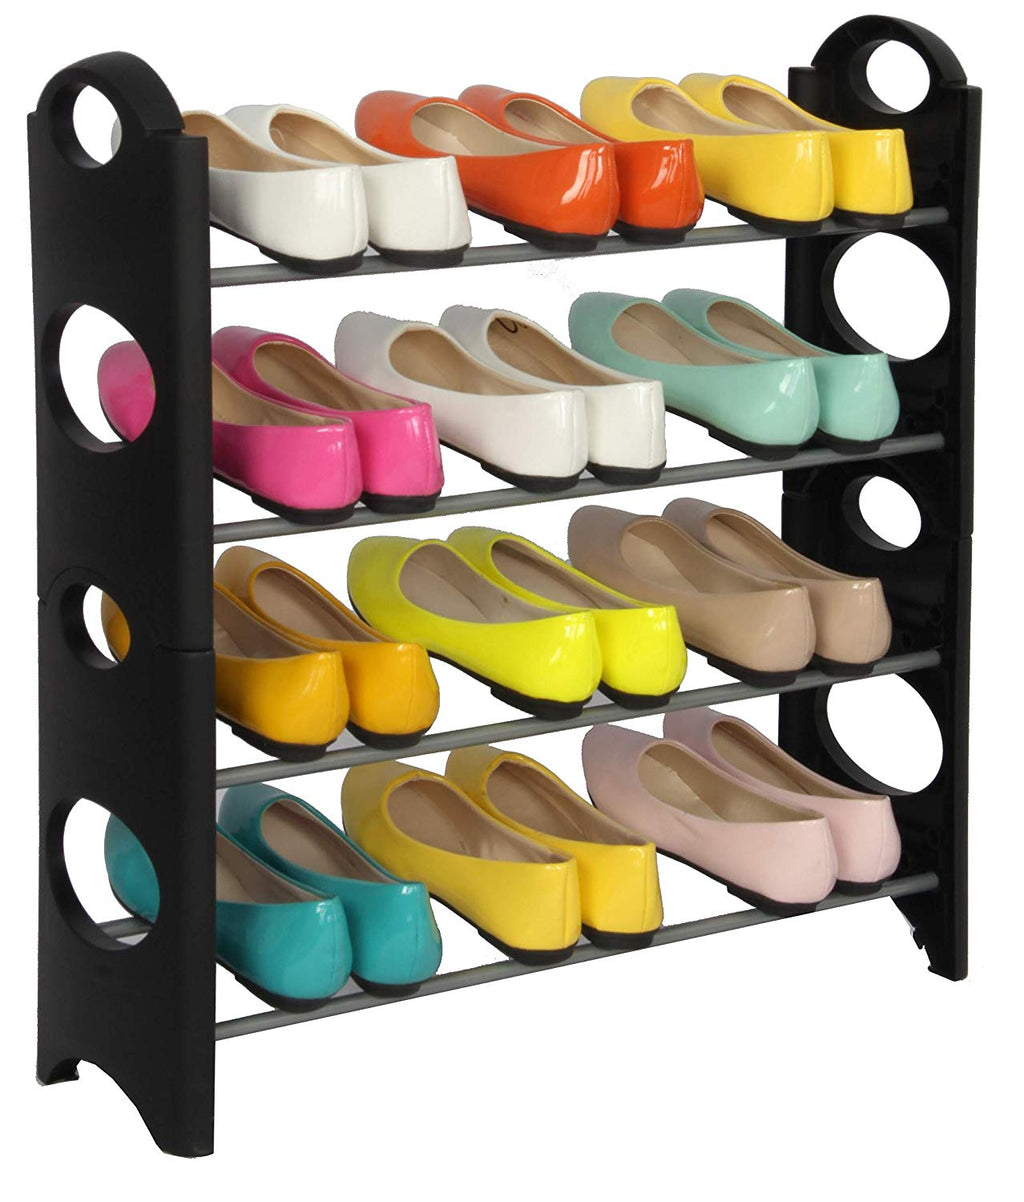 J&V TEXTILES Stackable Shoe Storage and Organizer Racks 4-Tier 6-Tier Over The Door or Stackable (Stackable Rack) - Shoe Storage - J&V Textiles Premiere Home Goods